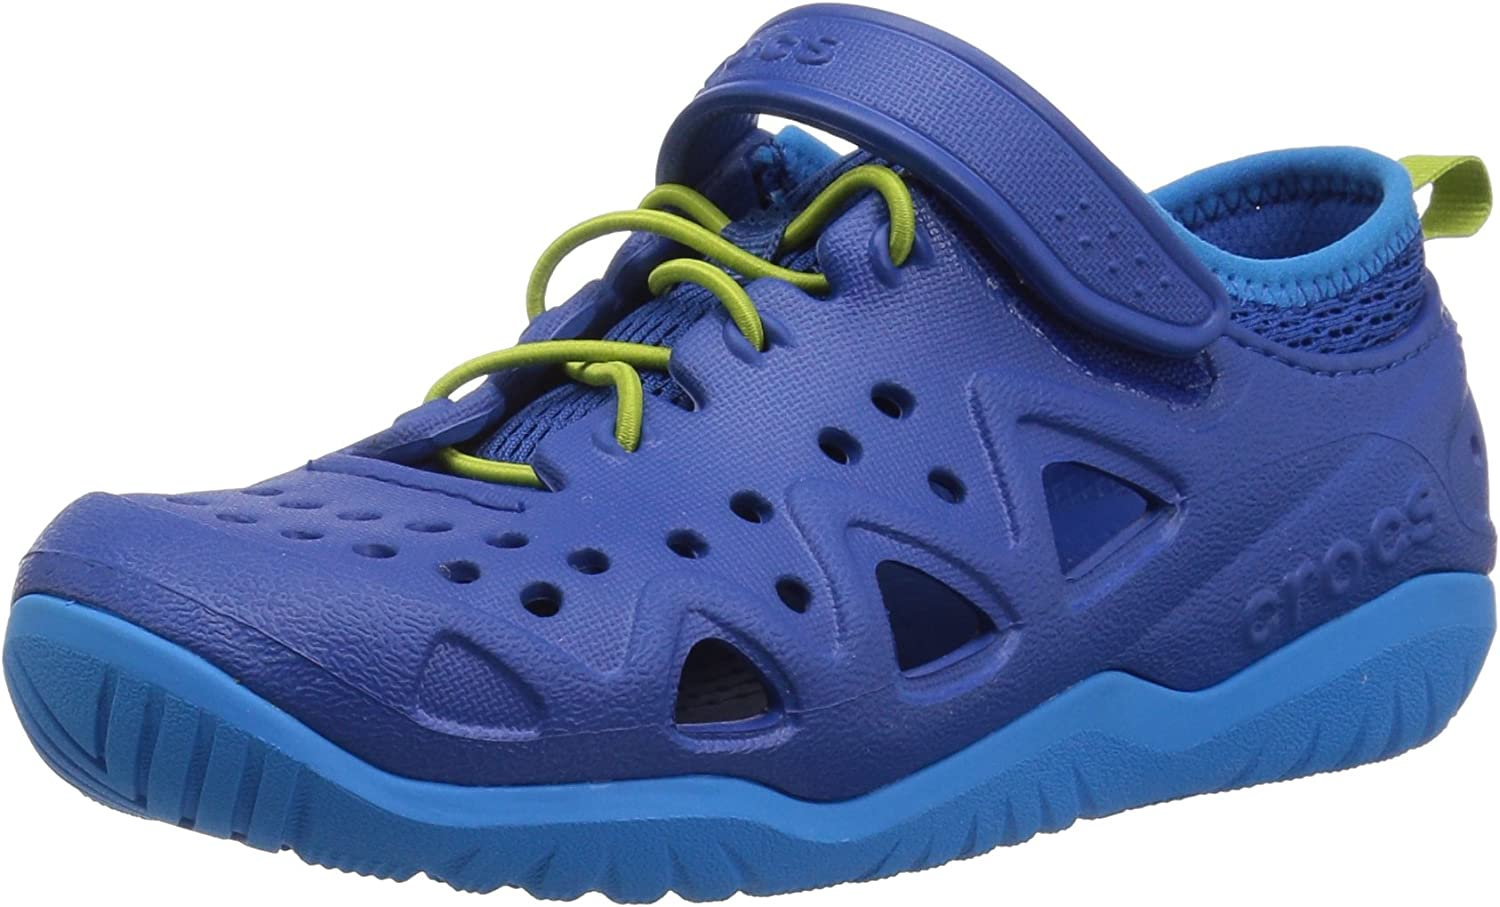 Crocs Safety and trust Unisex-Child Swiftwater Sneaker Shoe Choice Easy-on